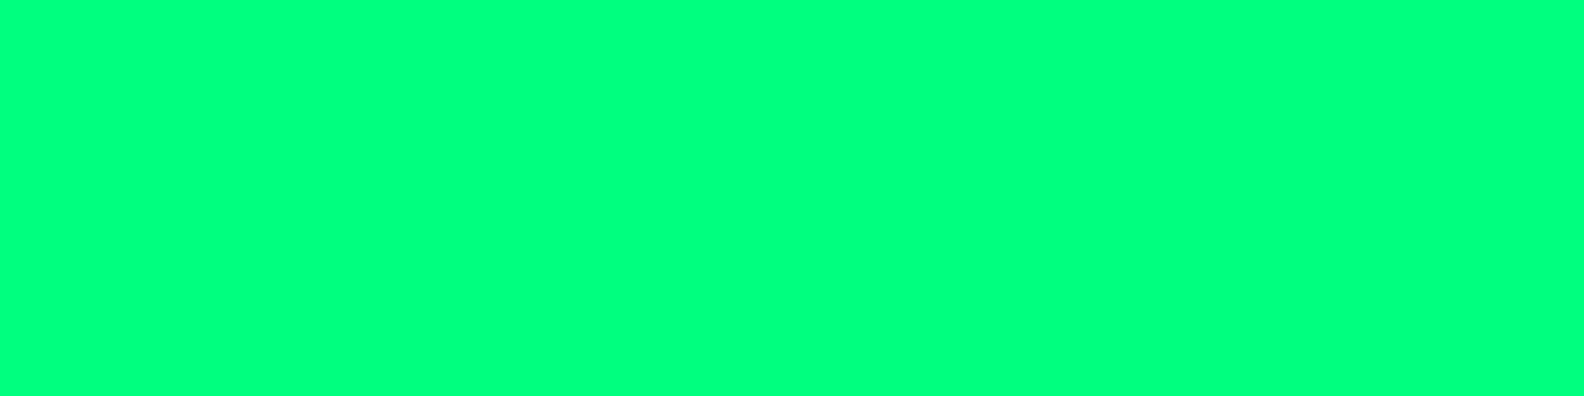 1584x396 Guppie Green Solid Color Background